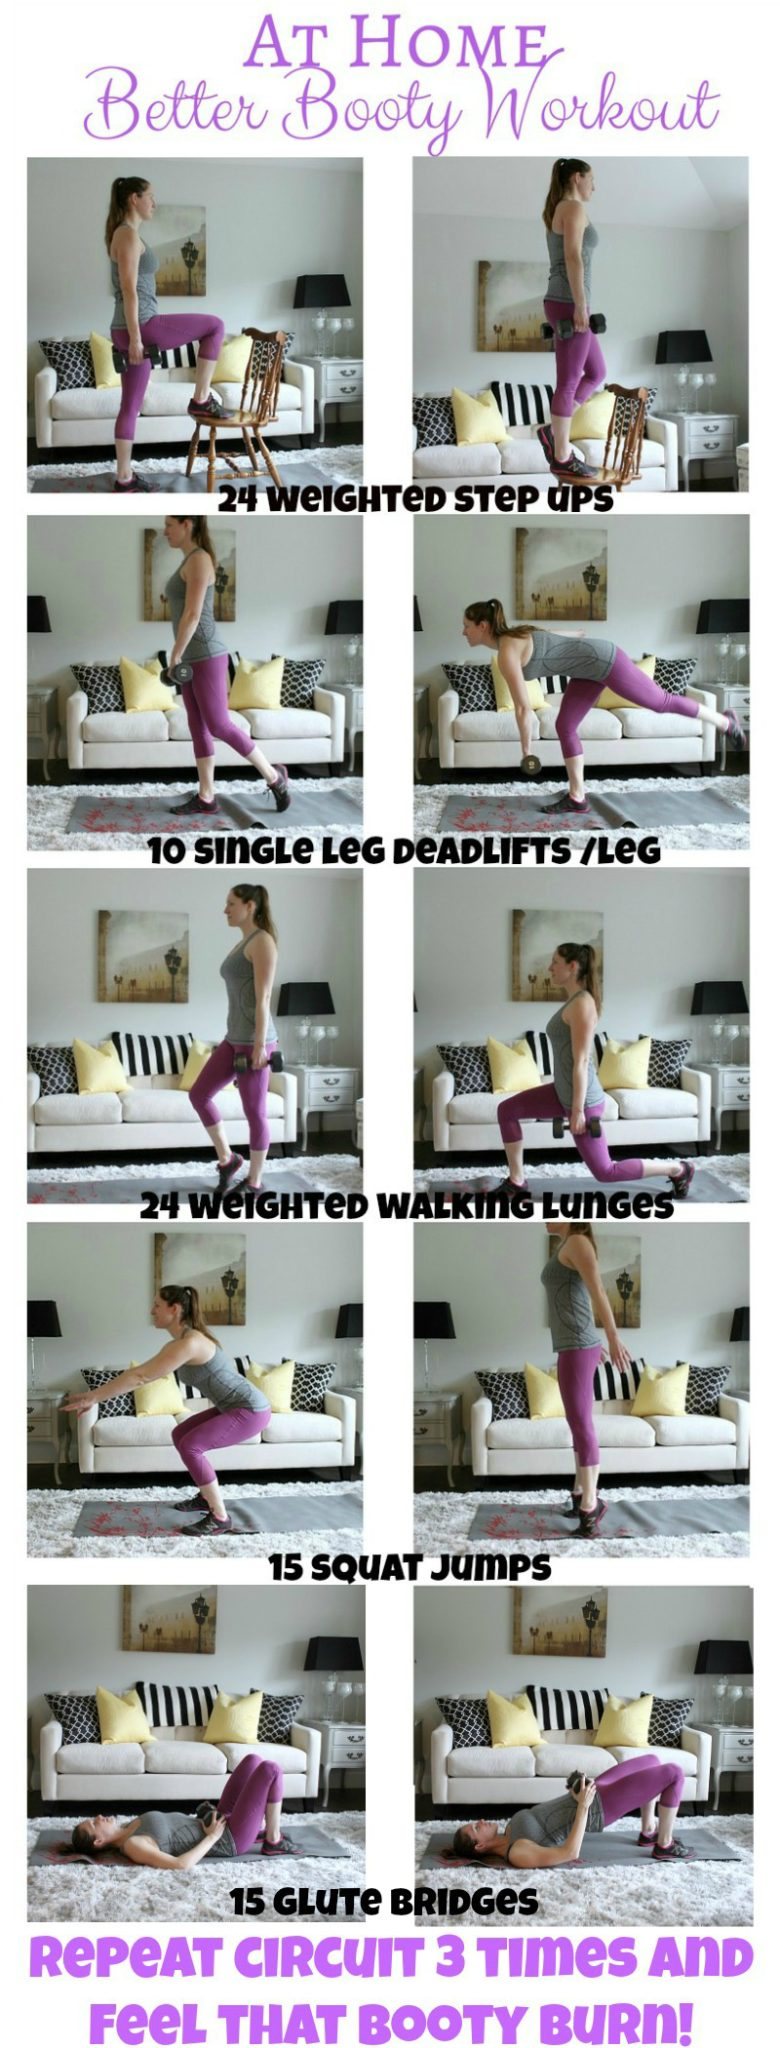 Get your booty in gear with this easy at home workout. There's also a special booty challenge so check it out!